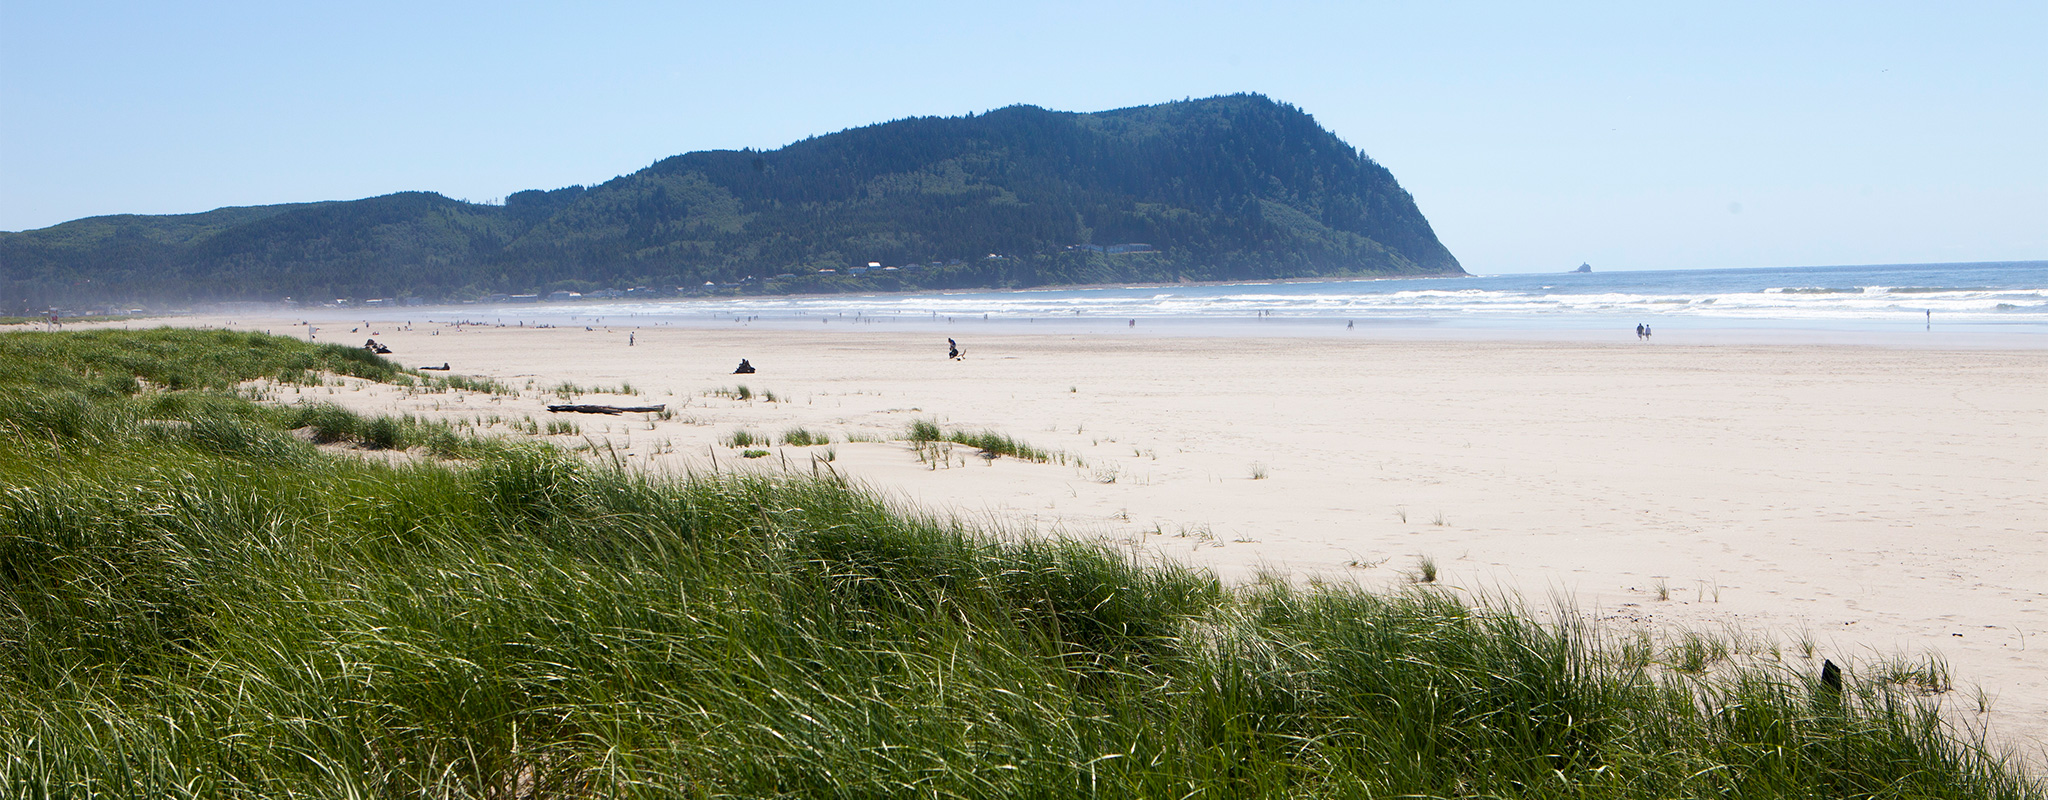 banner-Seaside-Oregon-Coast